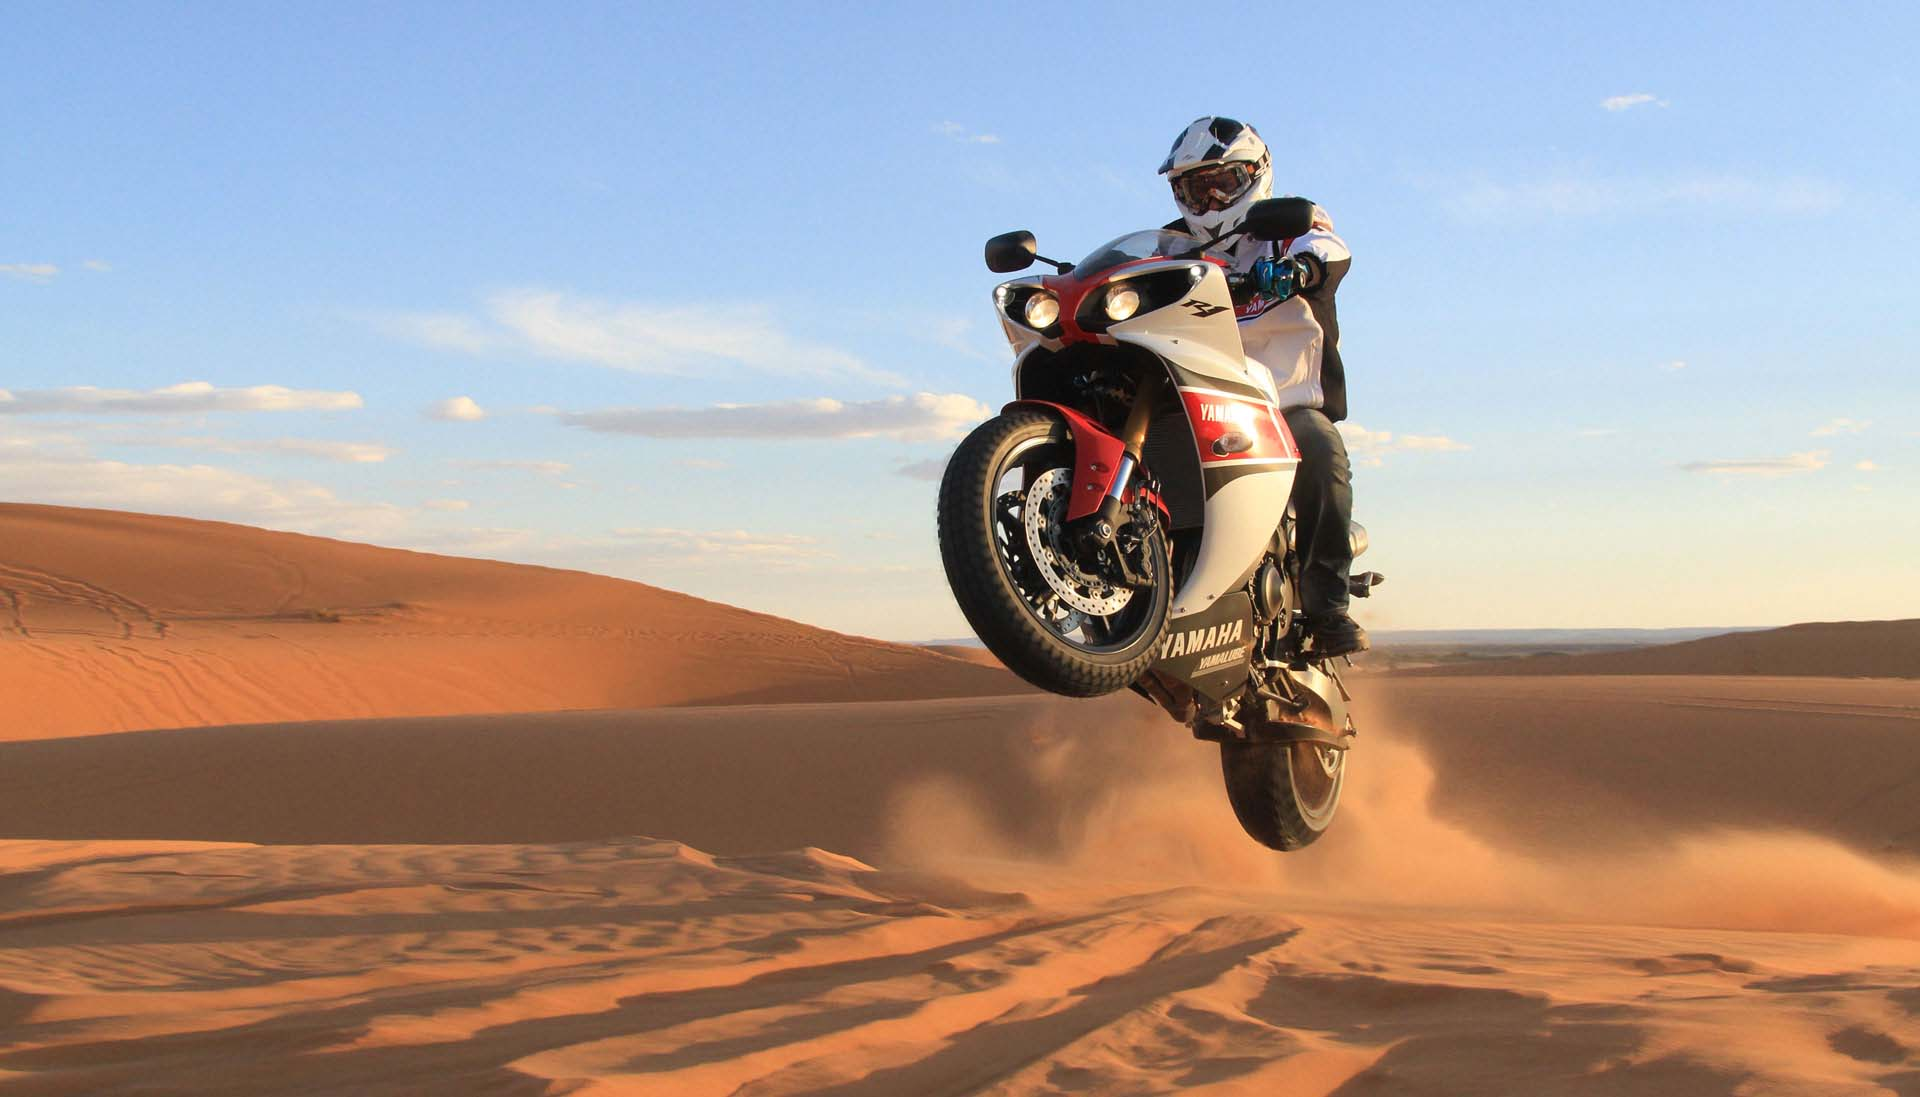 Yamaha S 180hp Adventure Bike Is Our Kind Of Crazy